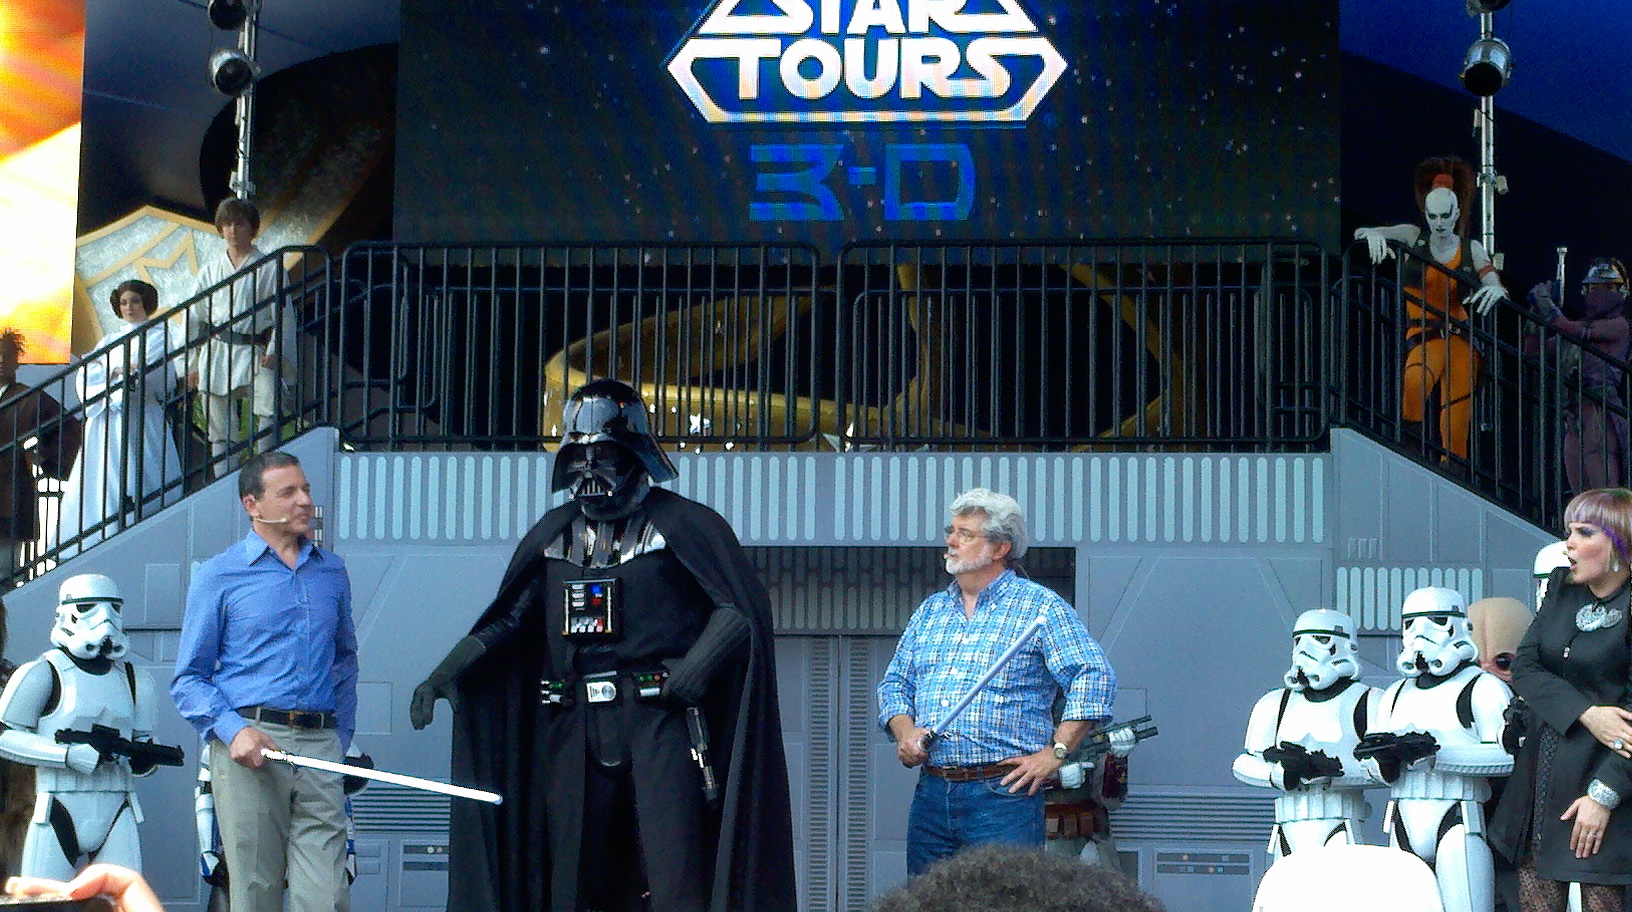 VIDEO: Star Tours Opening Day Characters in Full FORCE